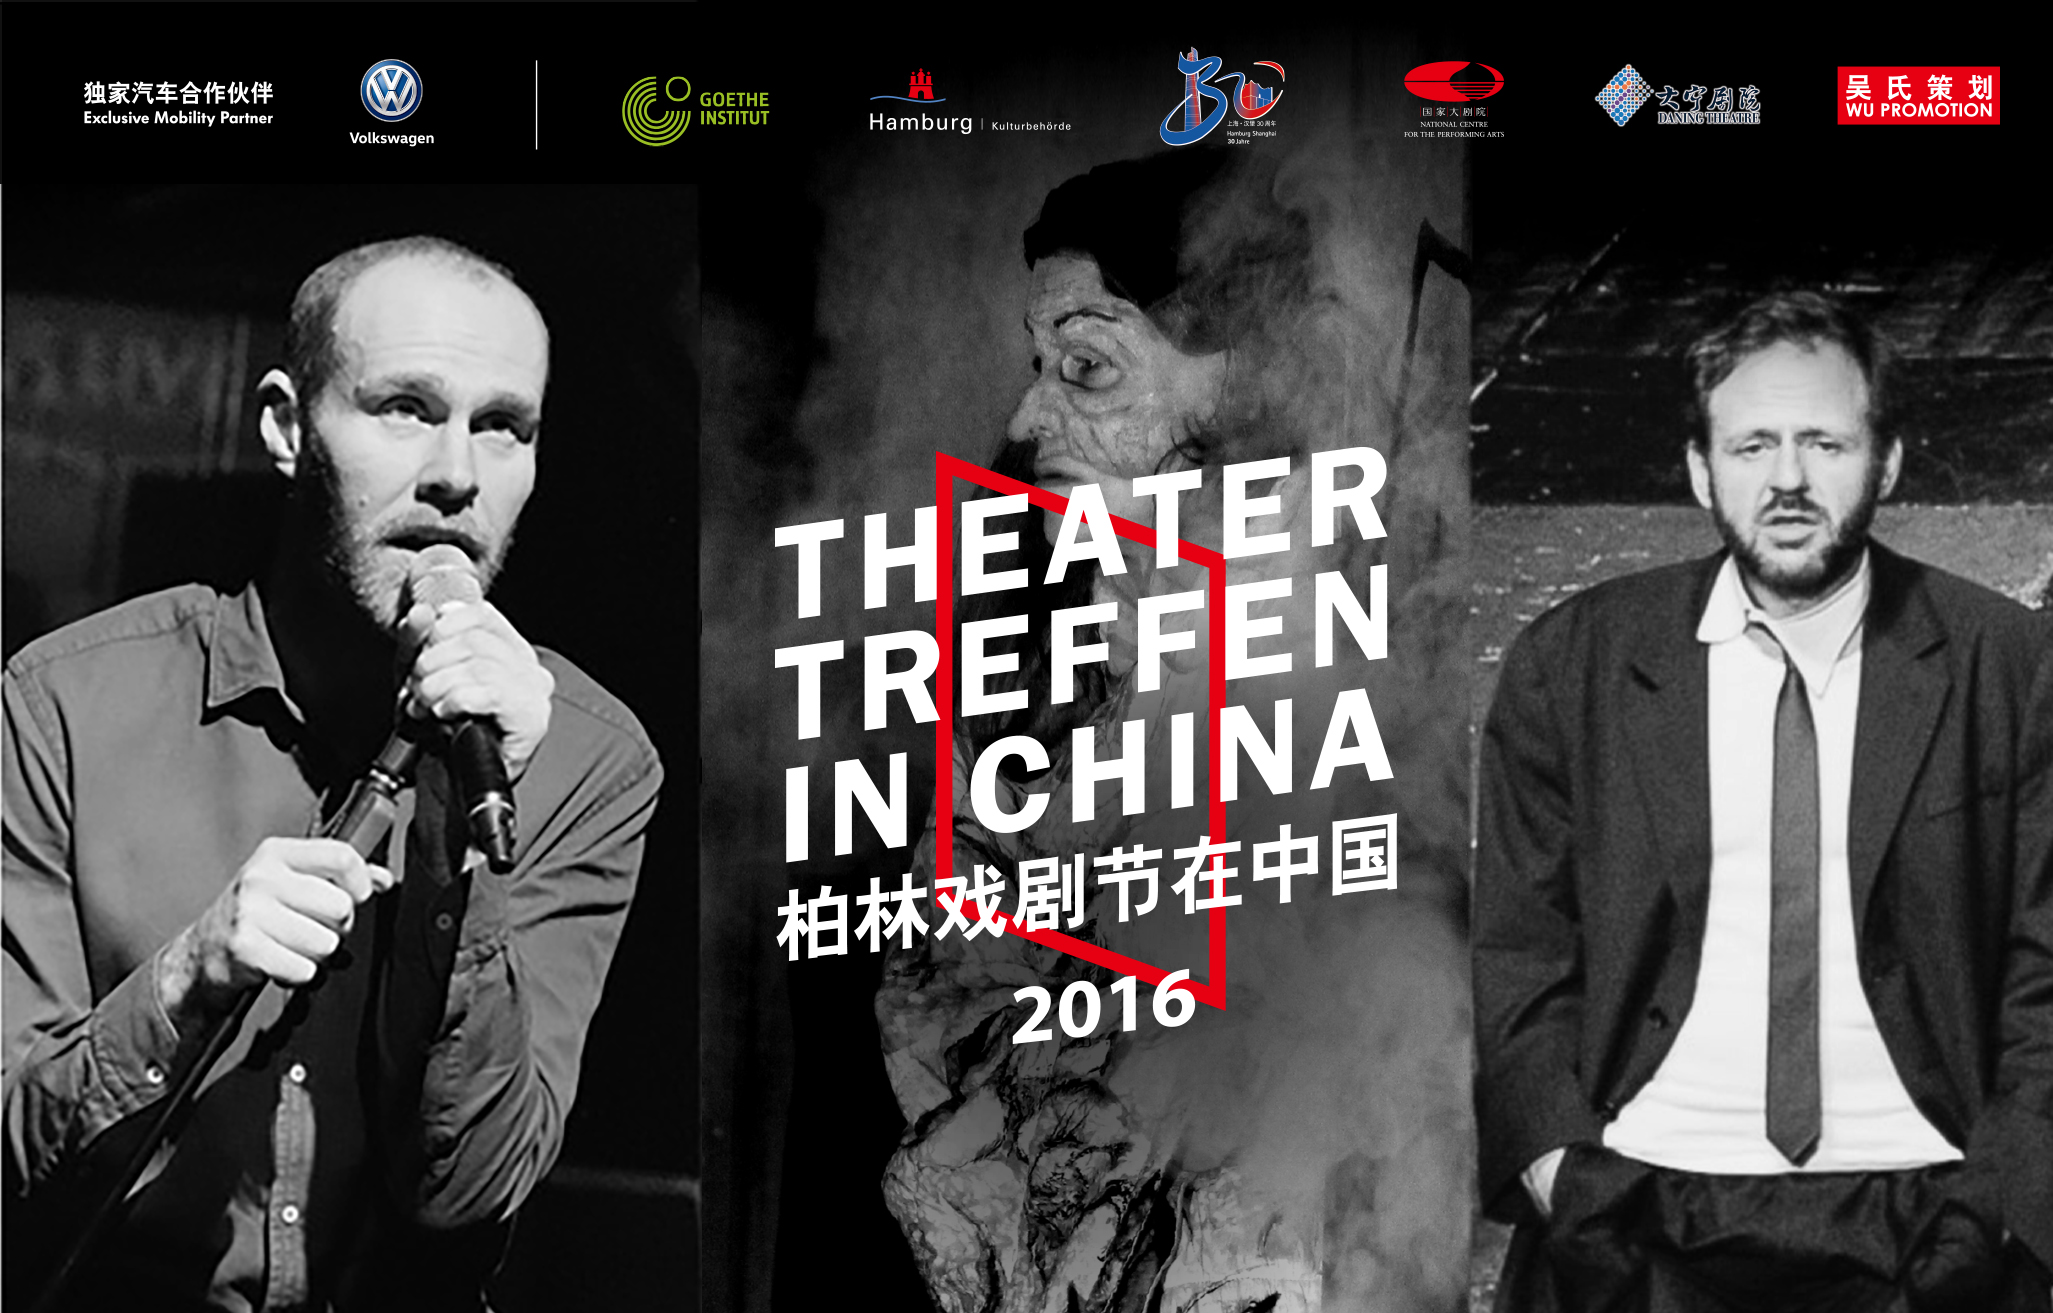 theatertreffen in china 2016